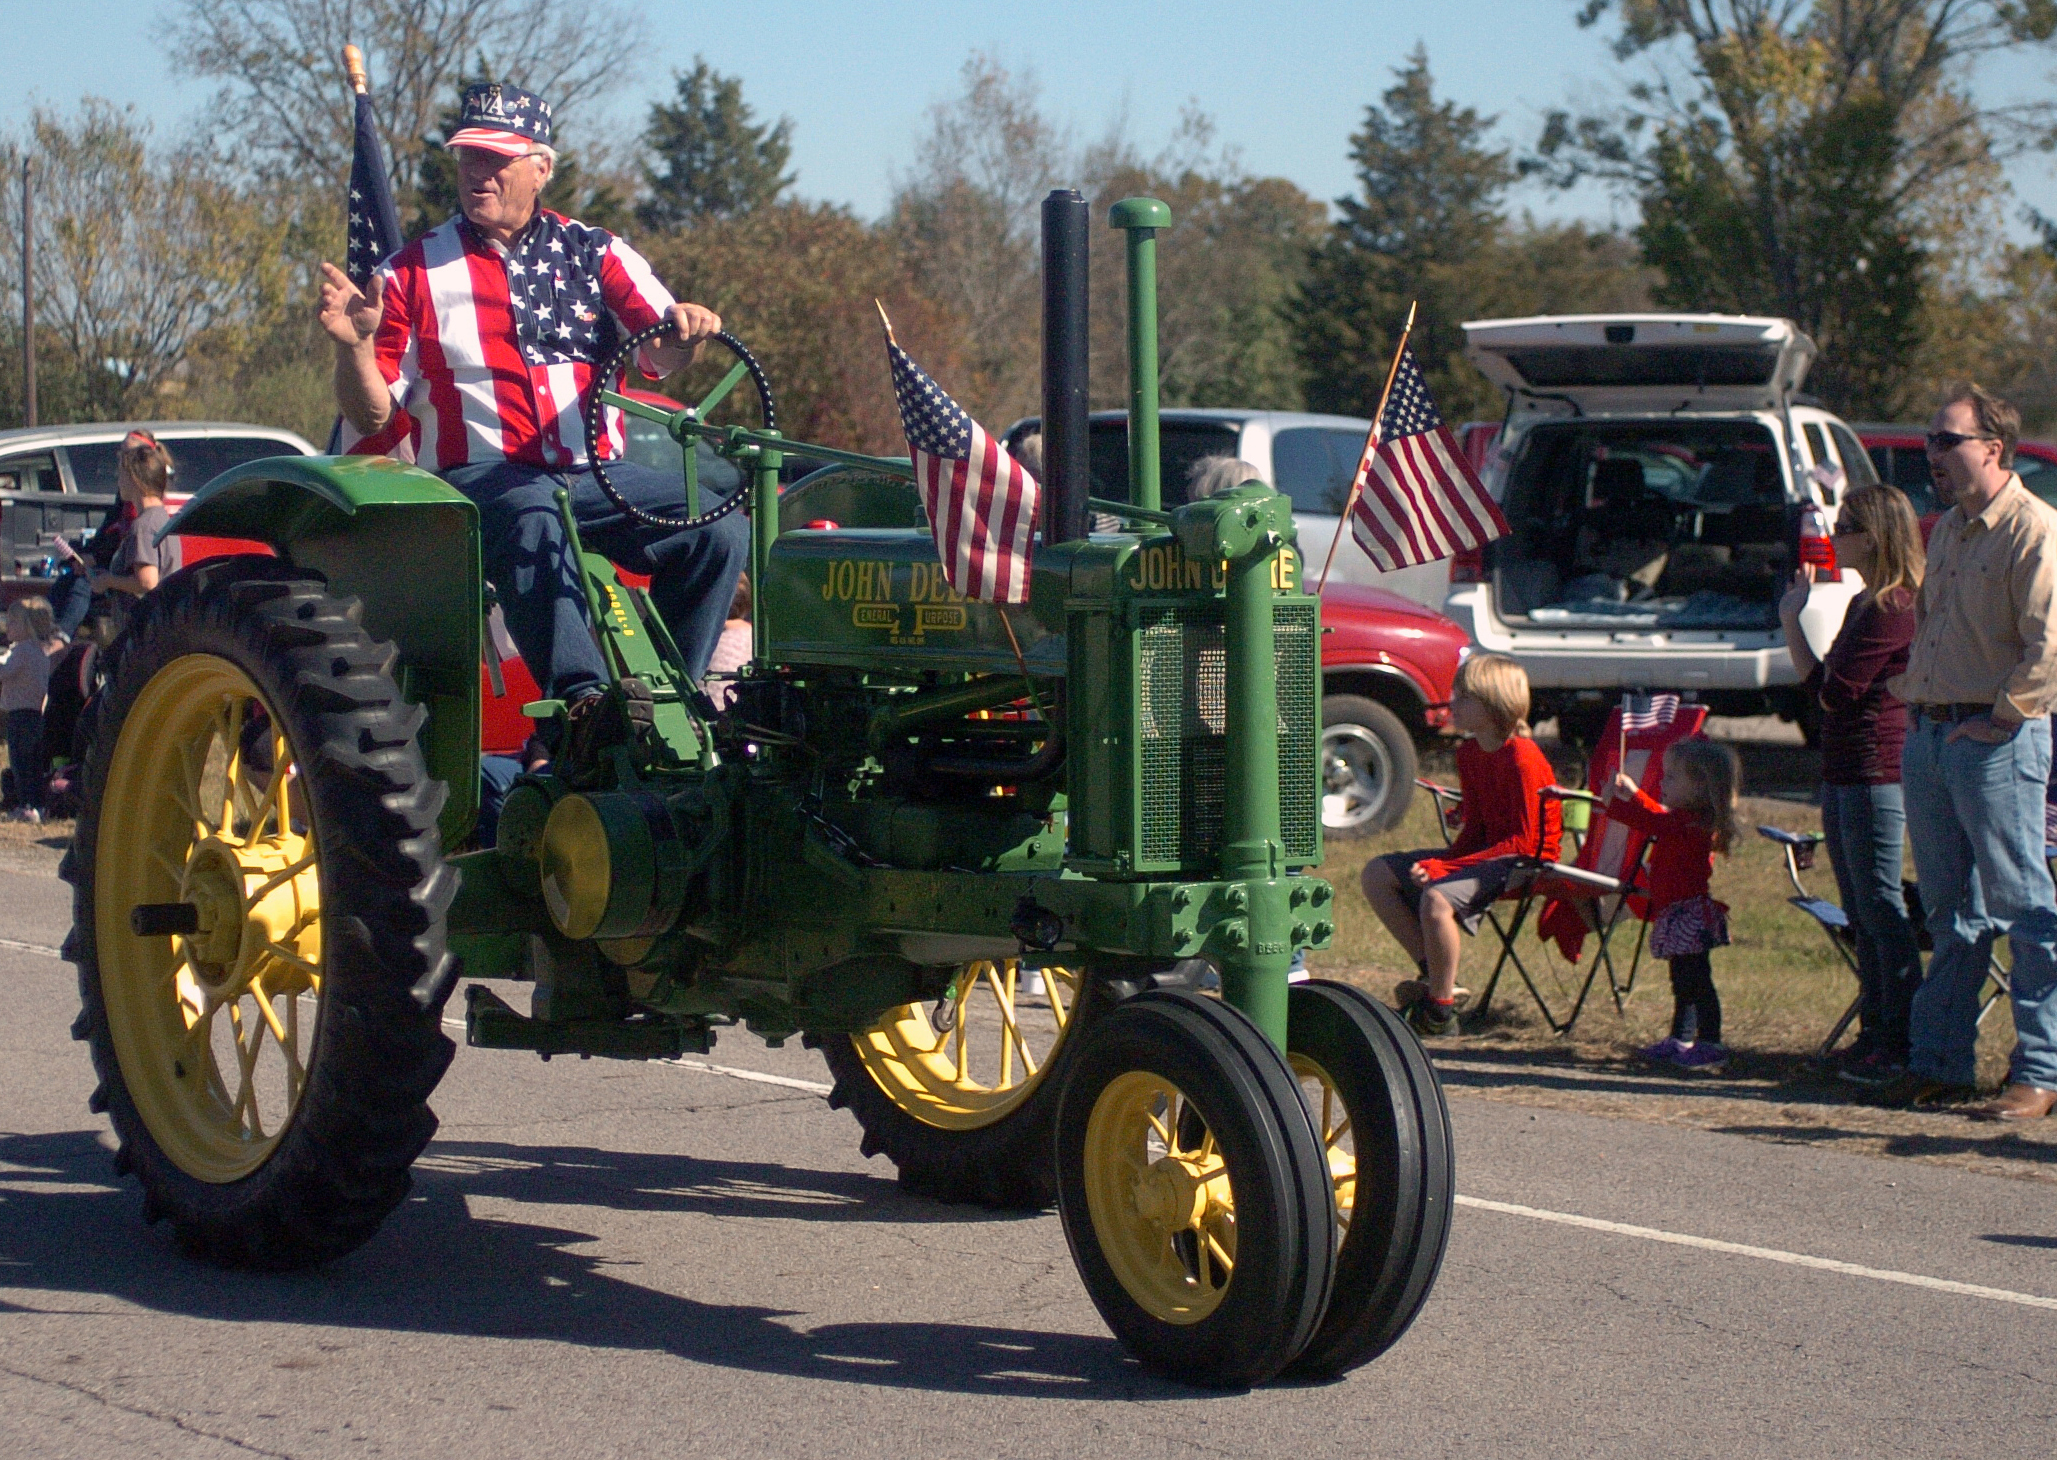 "A tractor driver points to the crowd at the fifth annual Veterans Day Parade at Chaffee Crossing was held on Saturday, November 12, 2016 at the Chaffee Crossing Historic District in Fort Smith. The parade's theme was ""Women In The Military,"" and was held to honor veterans from all branches of service and all U.S. wars. (Please include credit when using this photo) STEVE MARQUEZ/StMarq Photography"